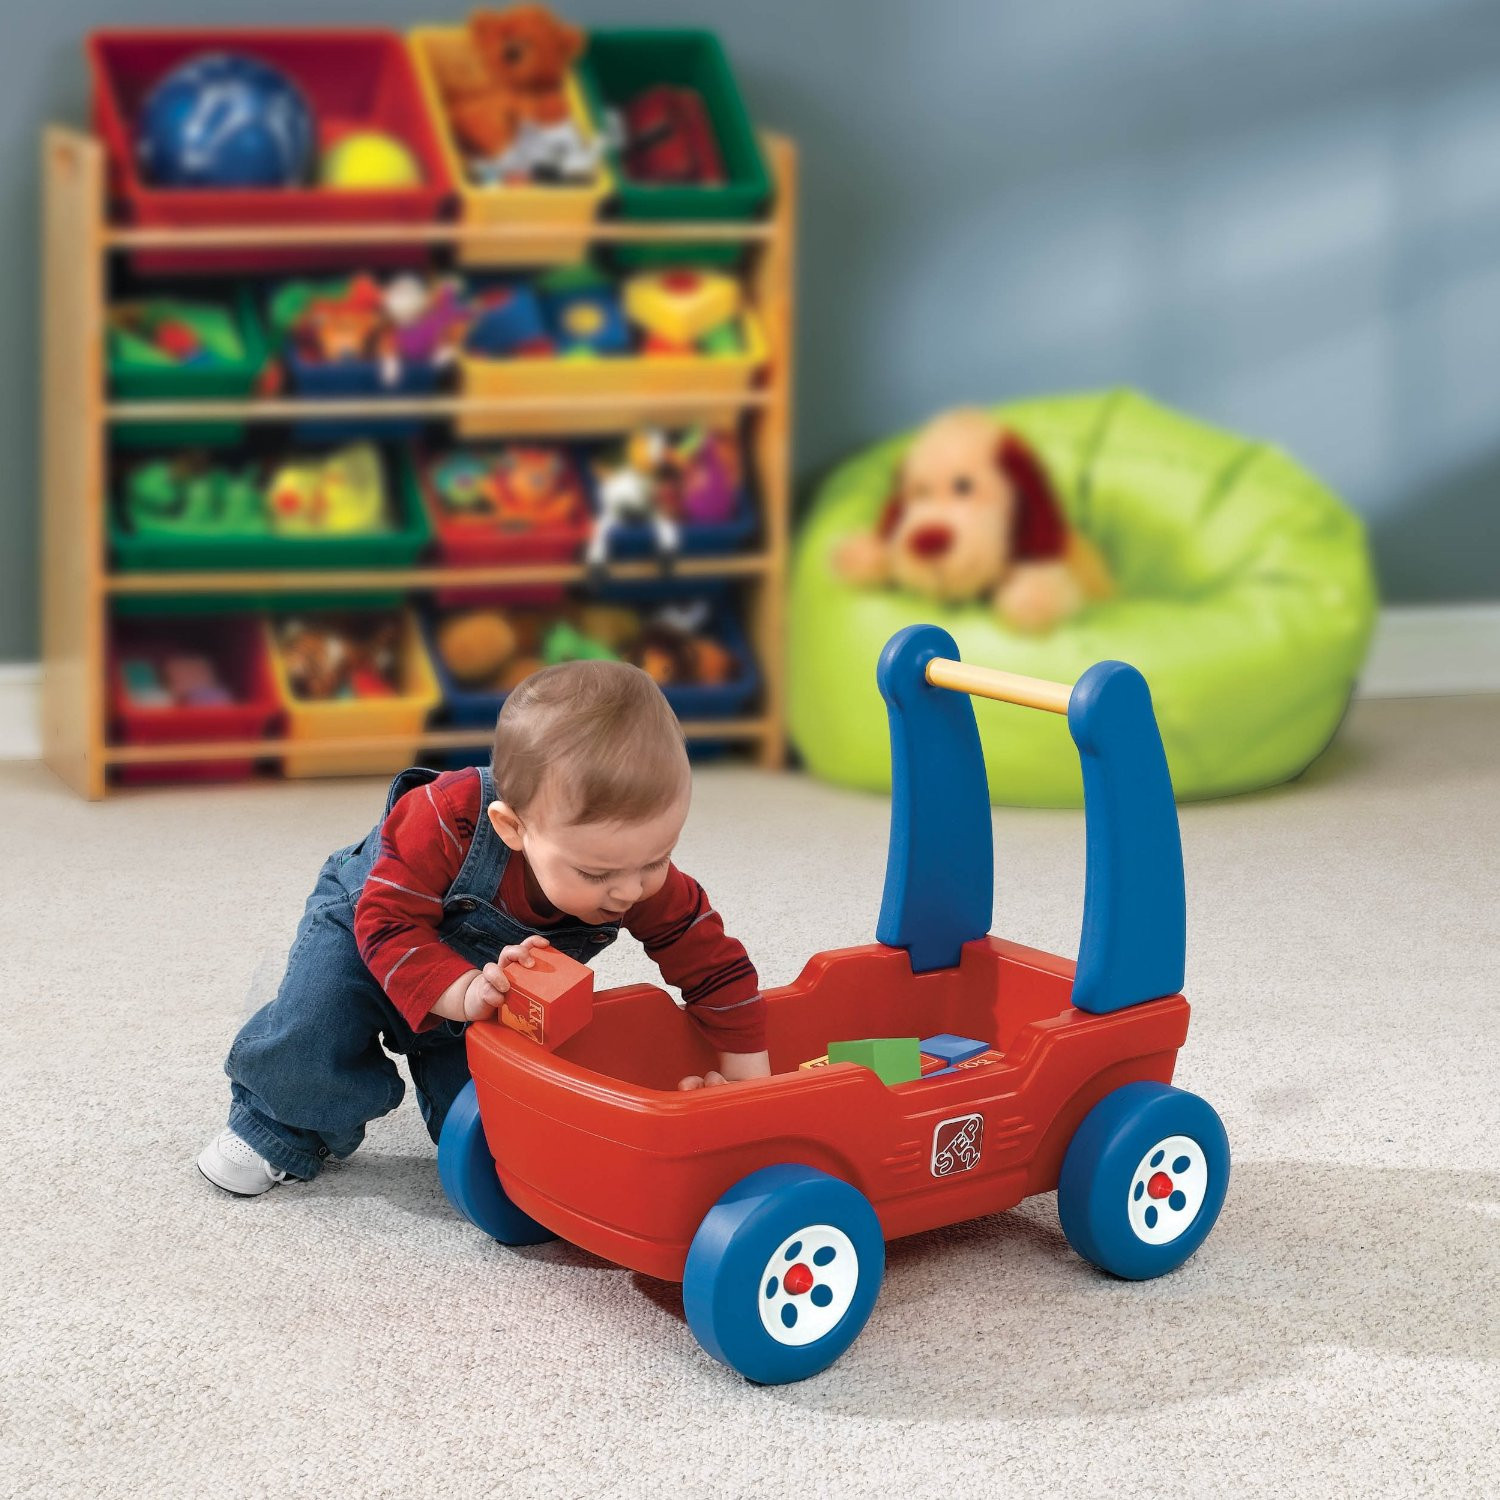 Gift Ideas For 1 Year Old Boys  Best Gifts Ideas for e Year Old Boys First Christmas